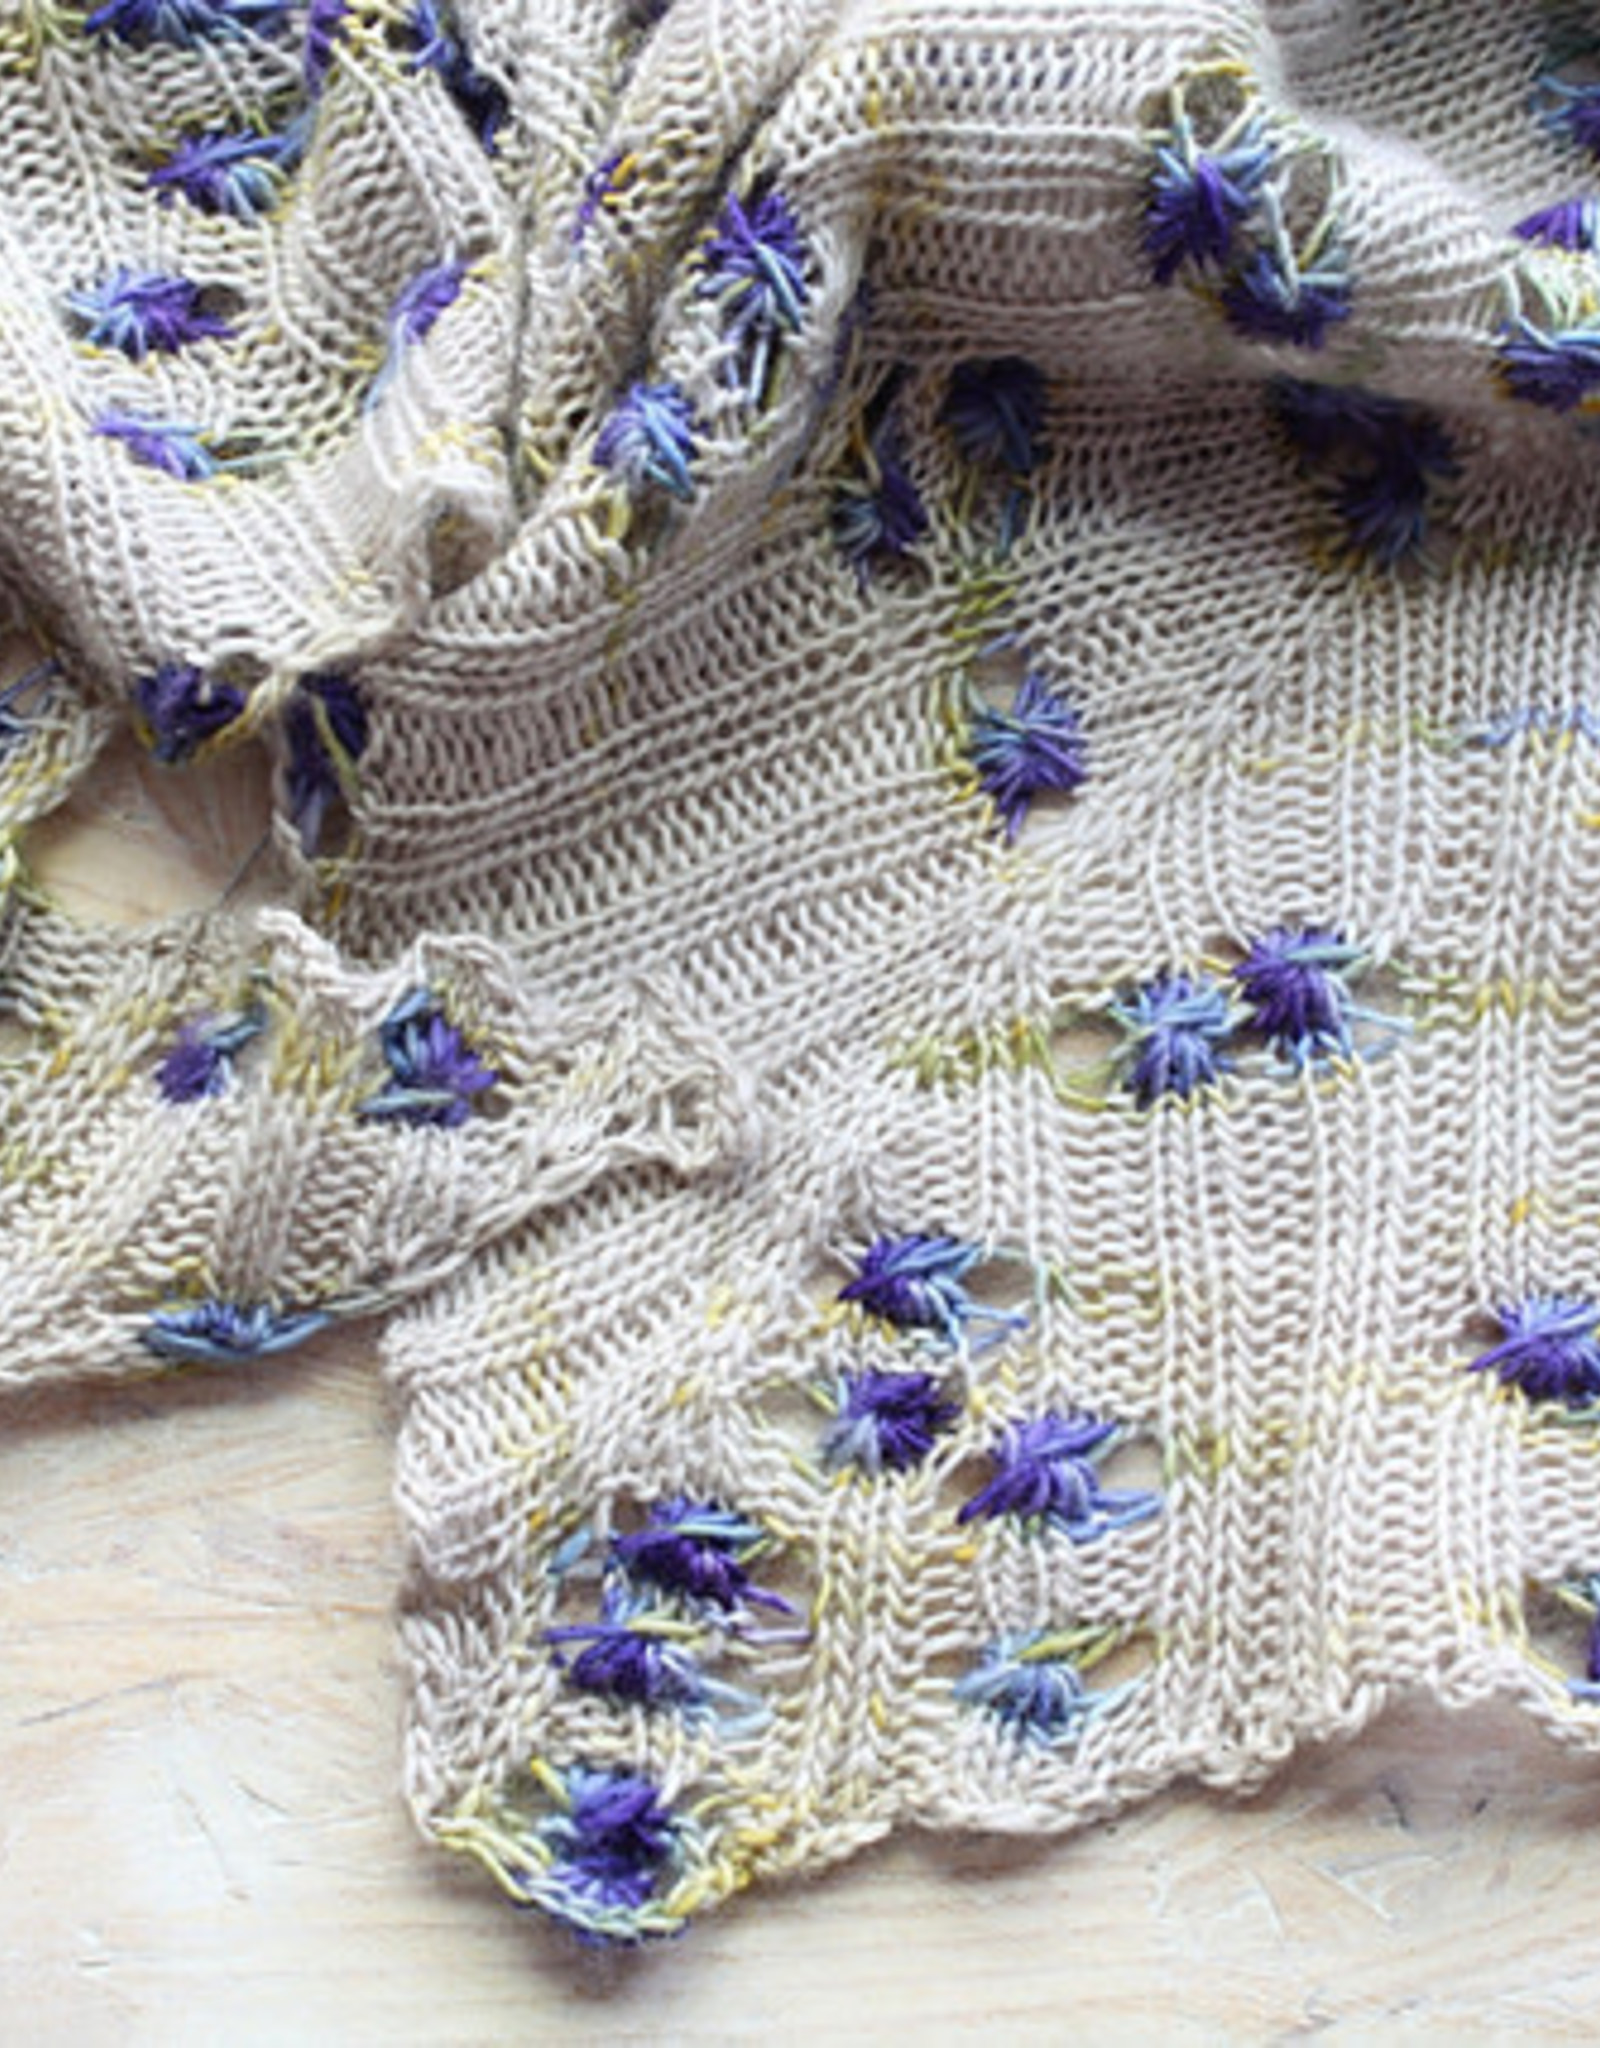 Colorburst Patterns (assigned pooling), Sunday, July 18th, 1-2:30pm